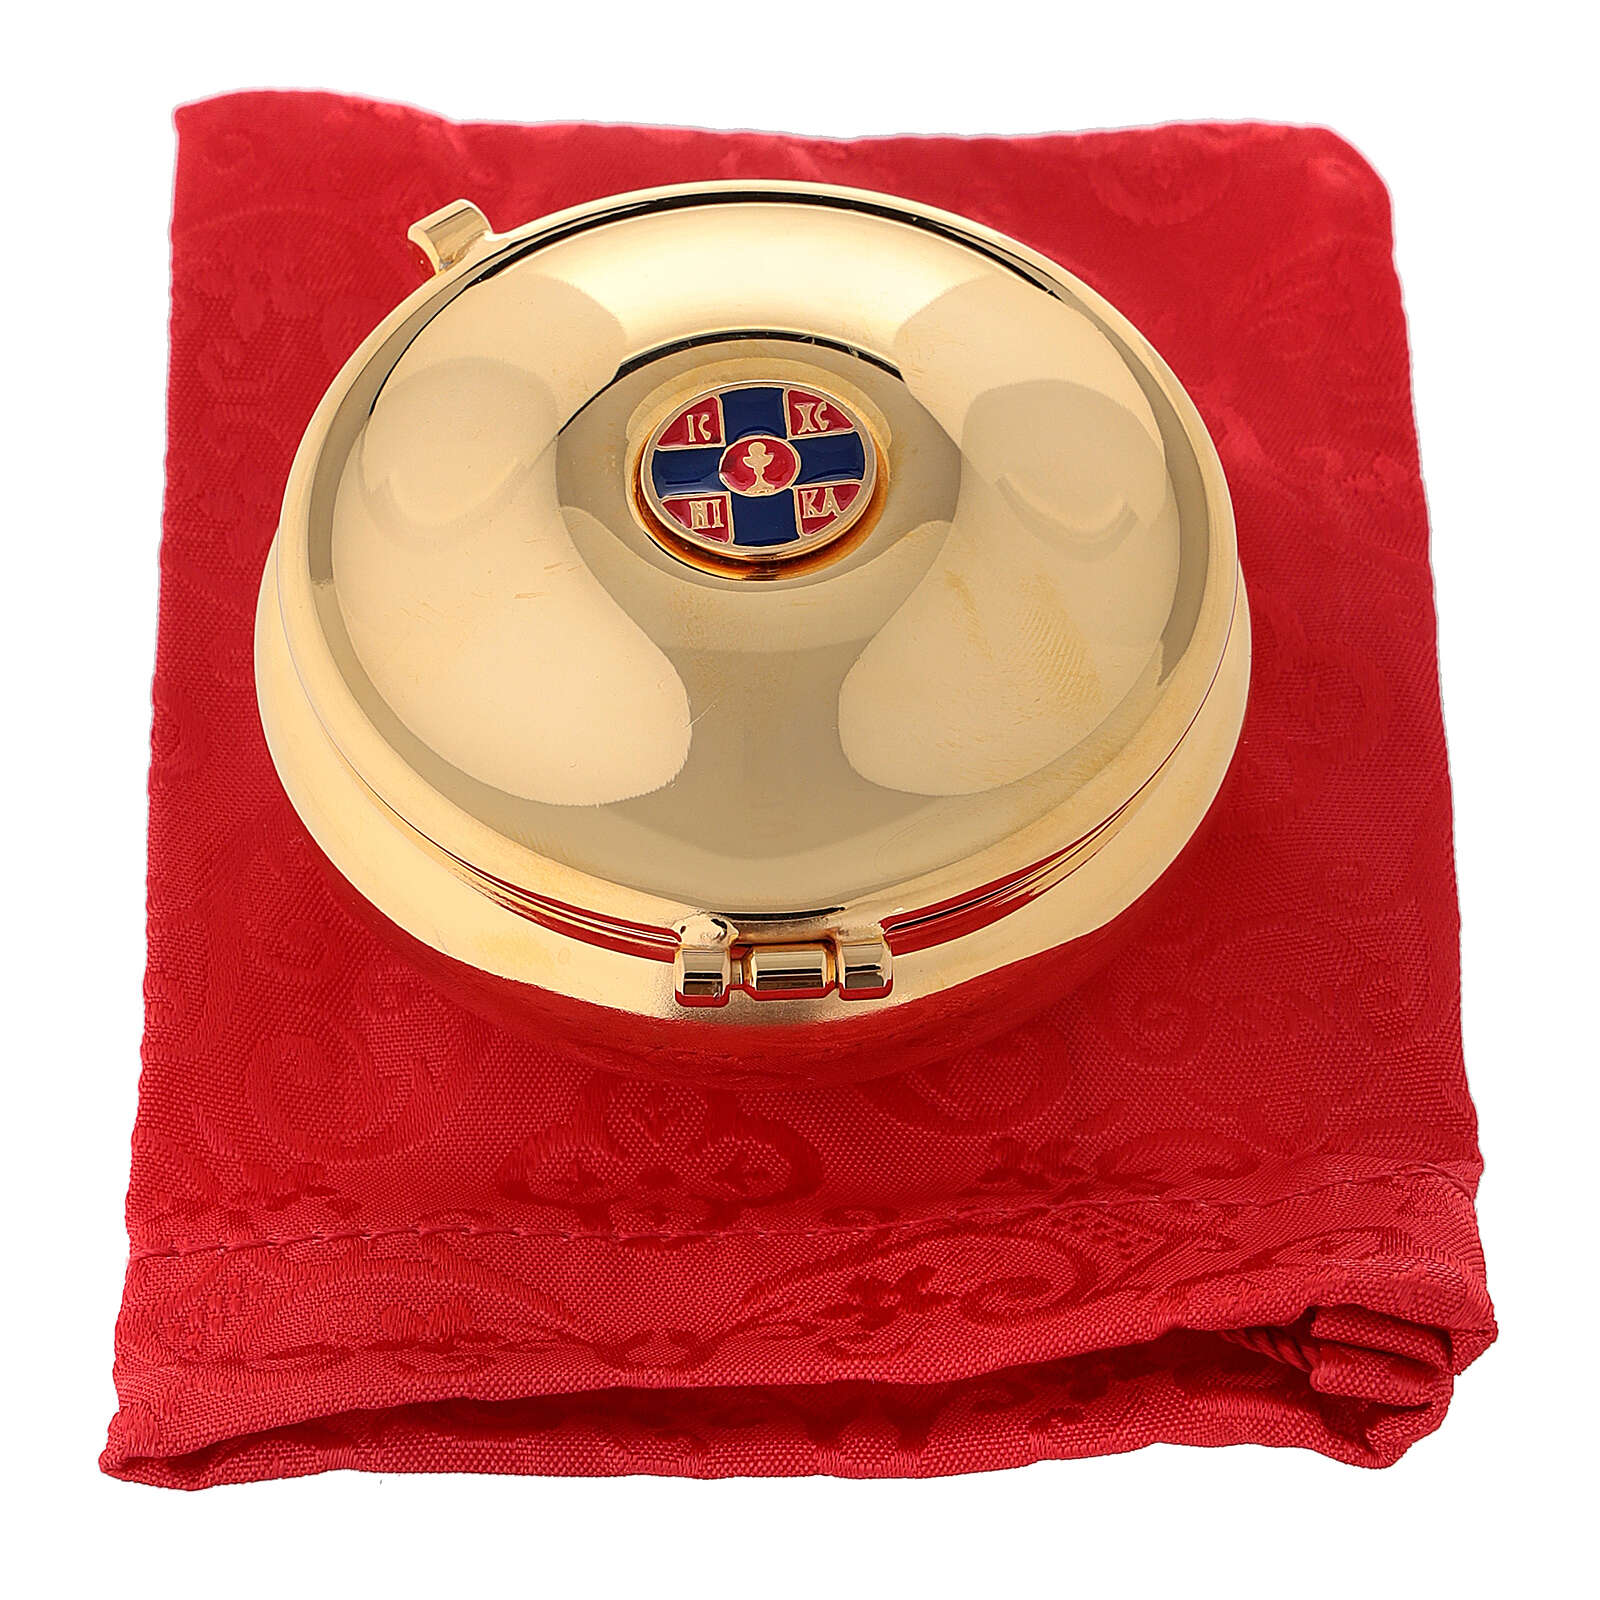 Pyx with enamel cross and red bag 3